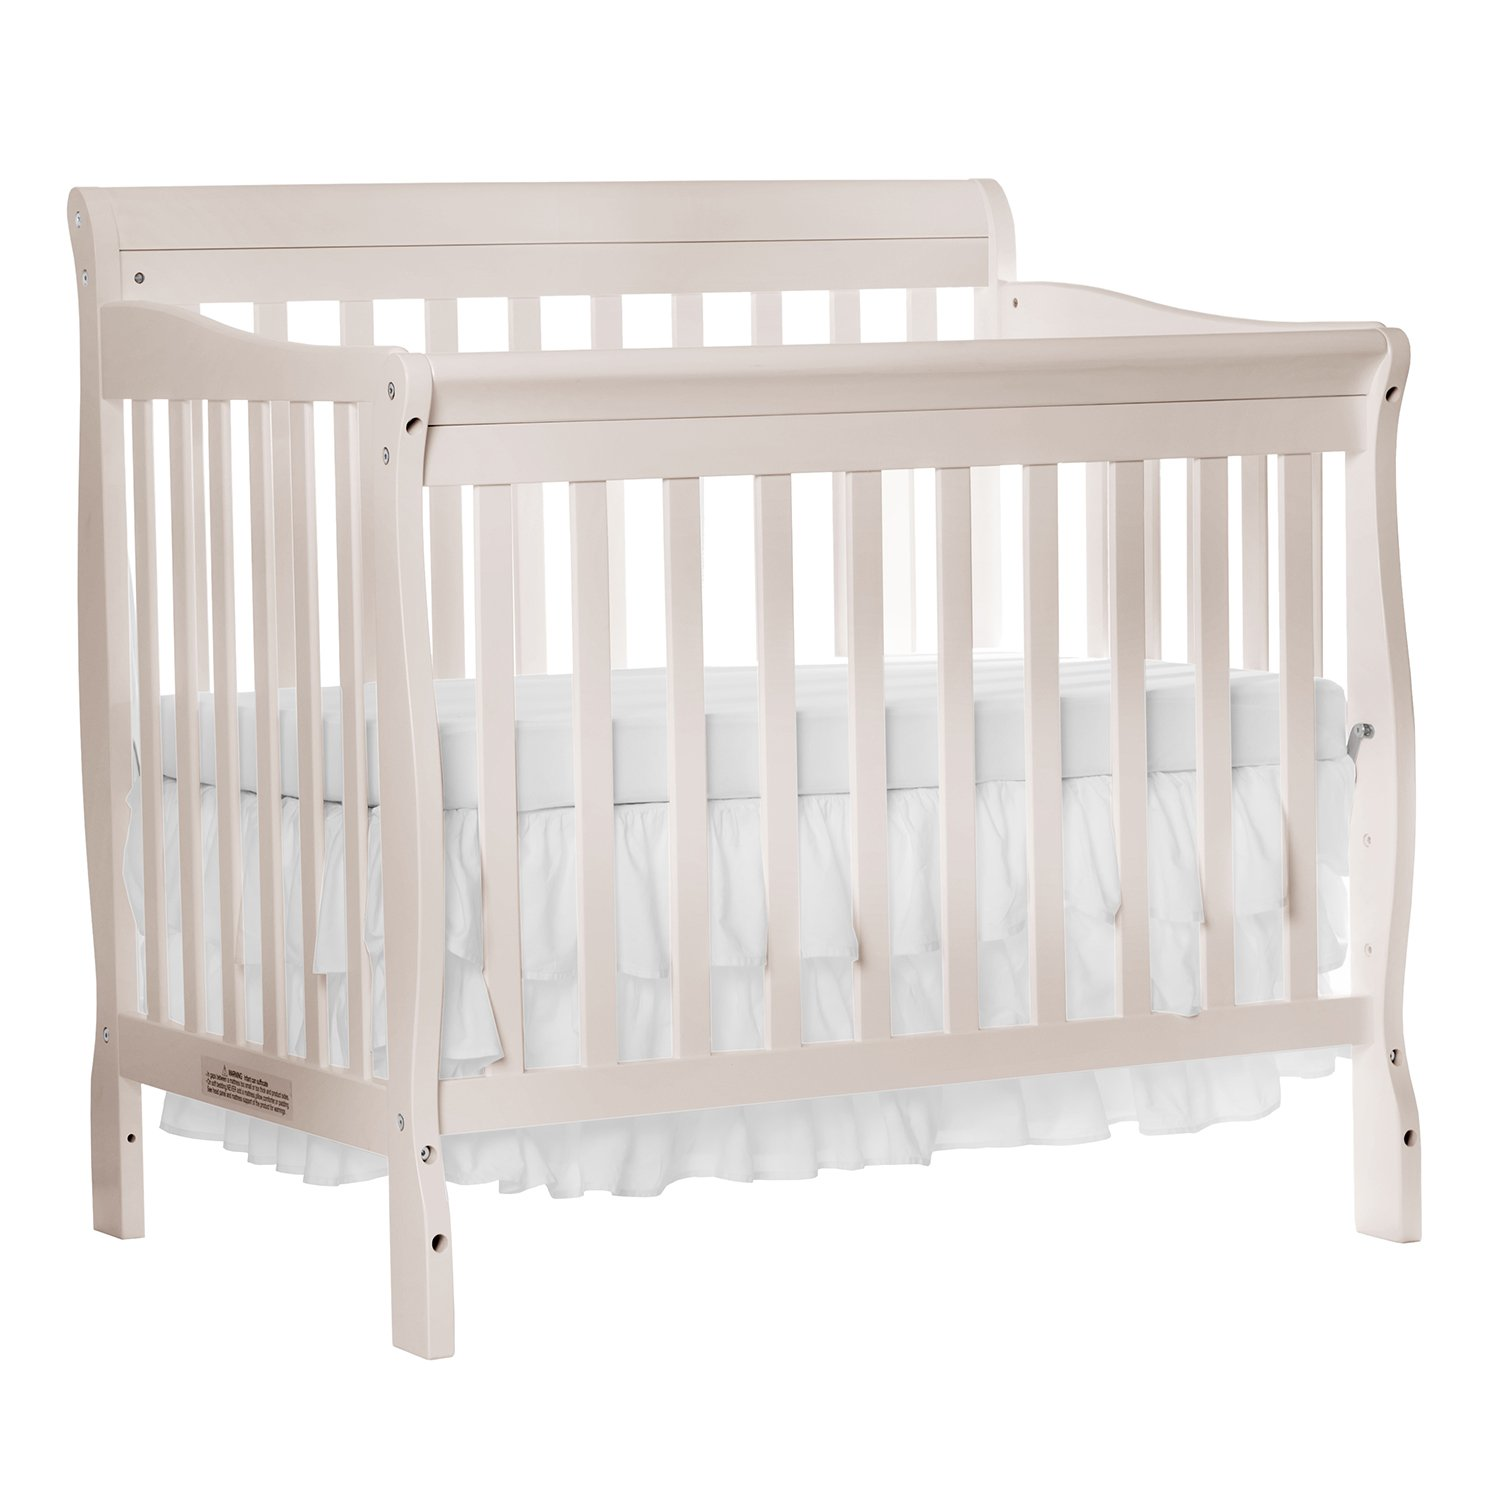 soft angelina in pin collection pairs finished french beautifully casegoods lovely cribs the white is of linen with crib iron it